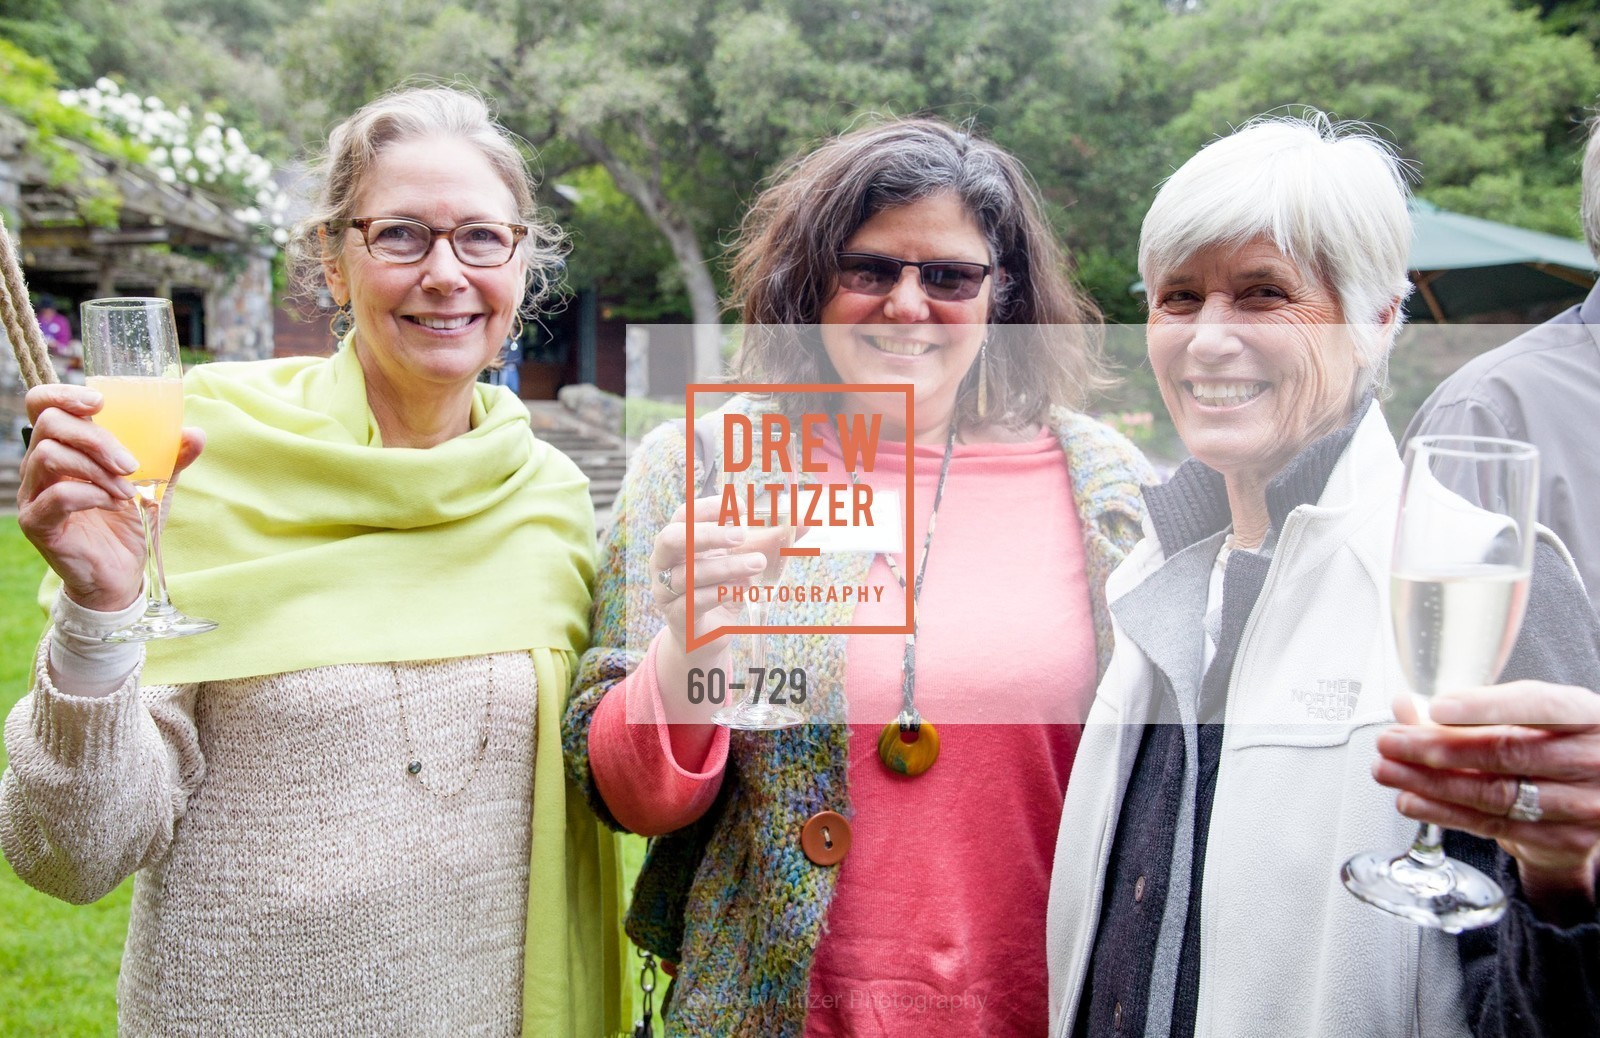 Kate Weese, Karina Nielsen, Susan Lukens, THE TRUST FOR PUBLIC LAND Luncheon Hosted by THE DREVER FAMILY FOUNDATION, US, May 15th, 2015,Drew Altizer, Drew Altizer Photography, full-service agency, private events, San Francisco photographer, photographer california